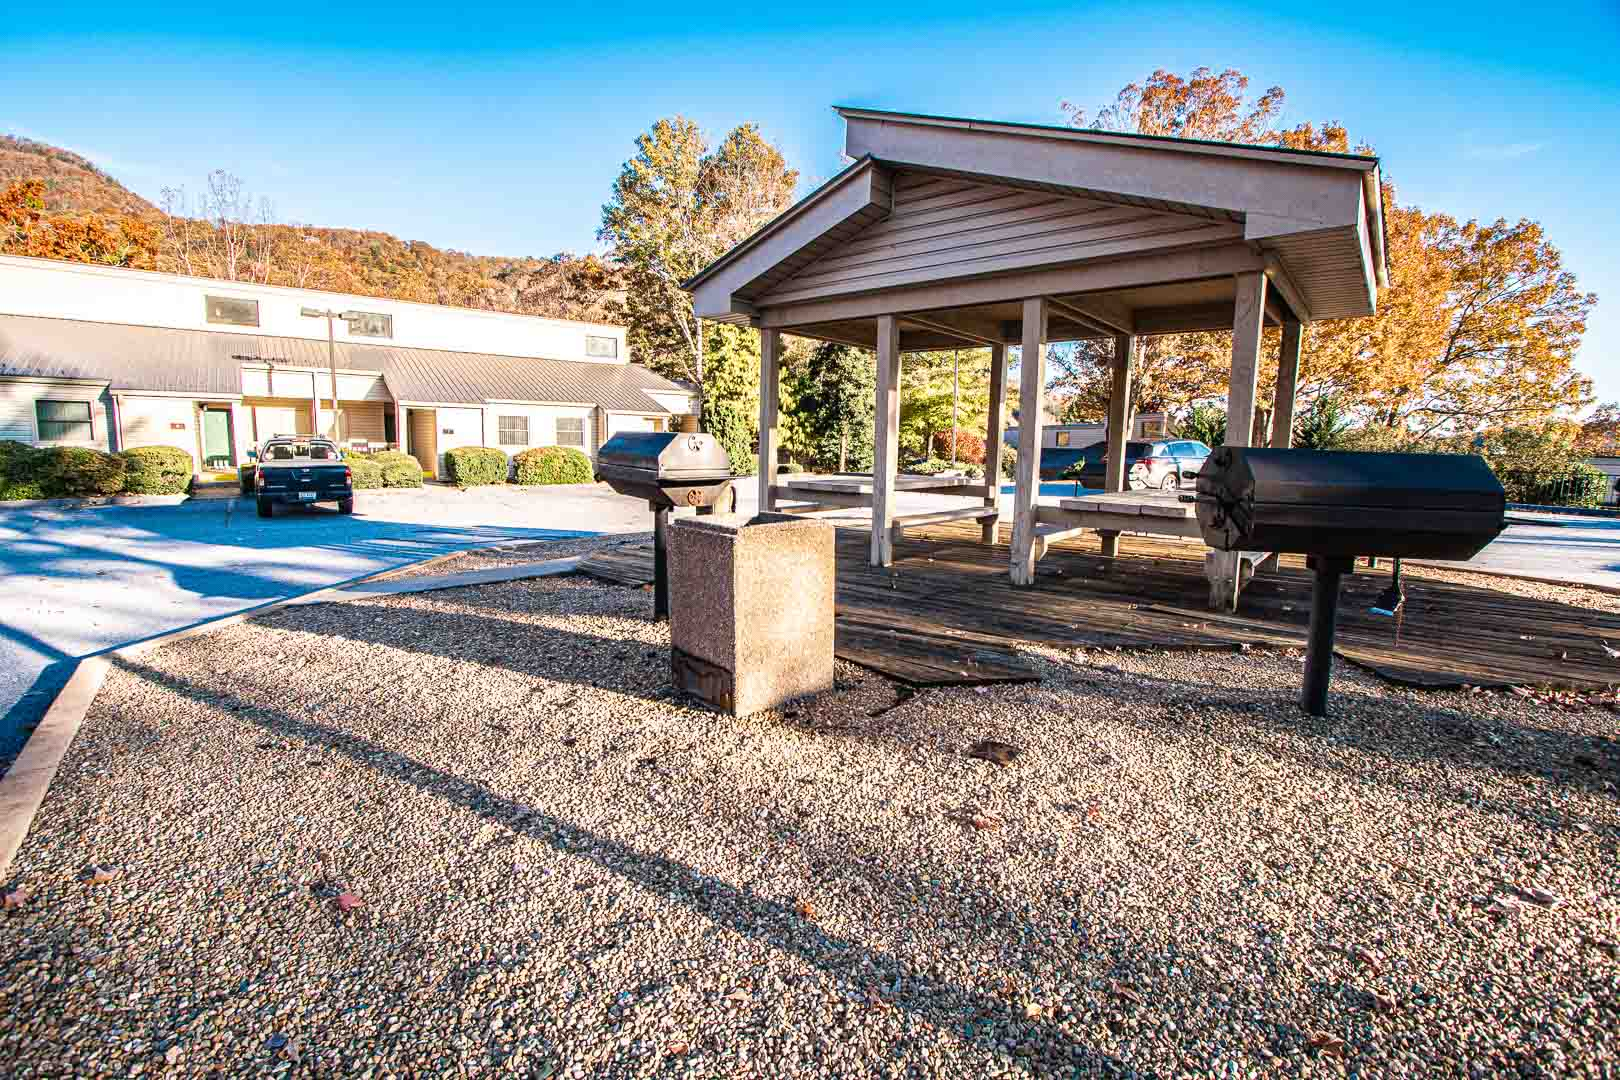 A peaceful BBQ area at VRI's Fairways of the Mountains in North Carolina.